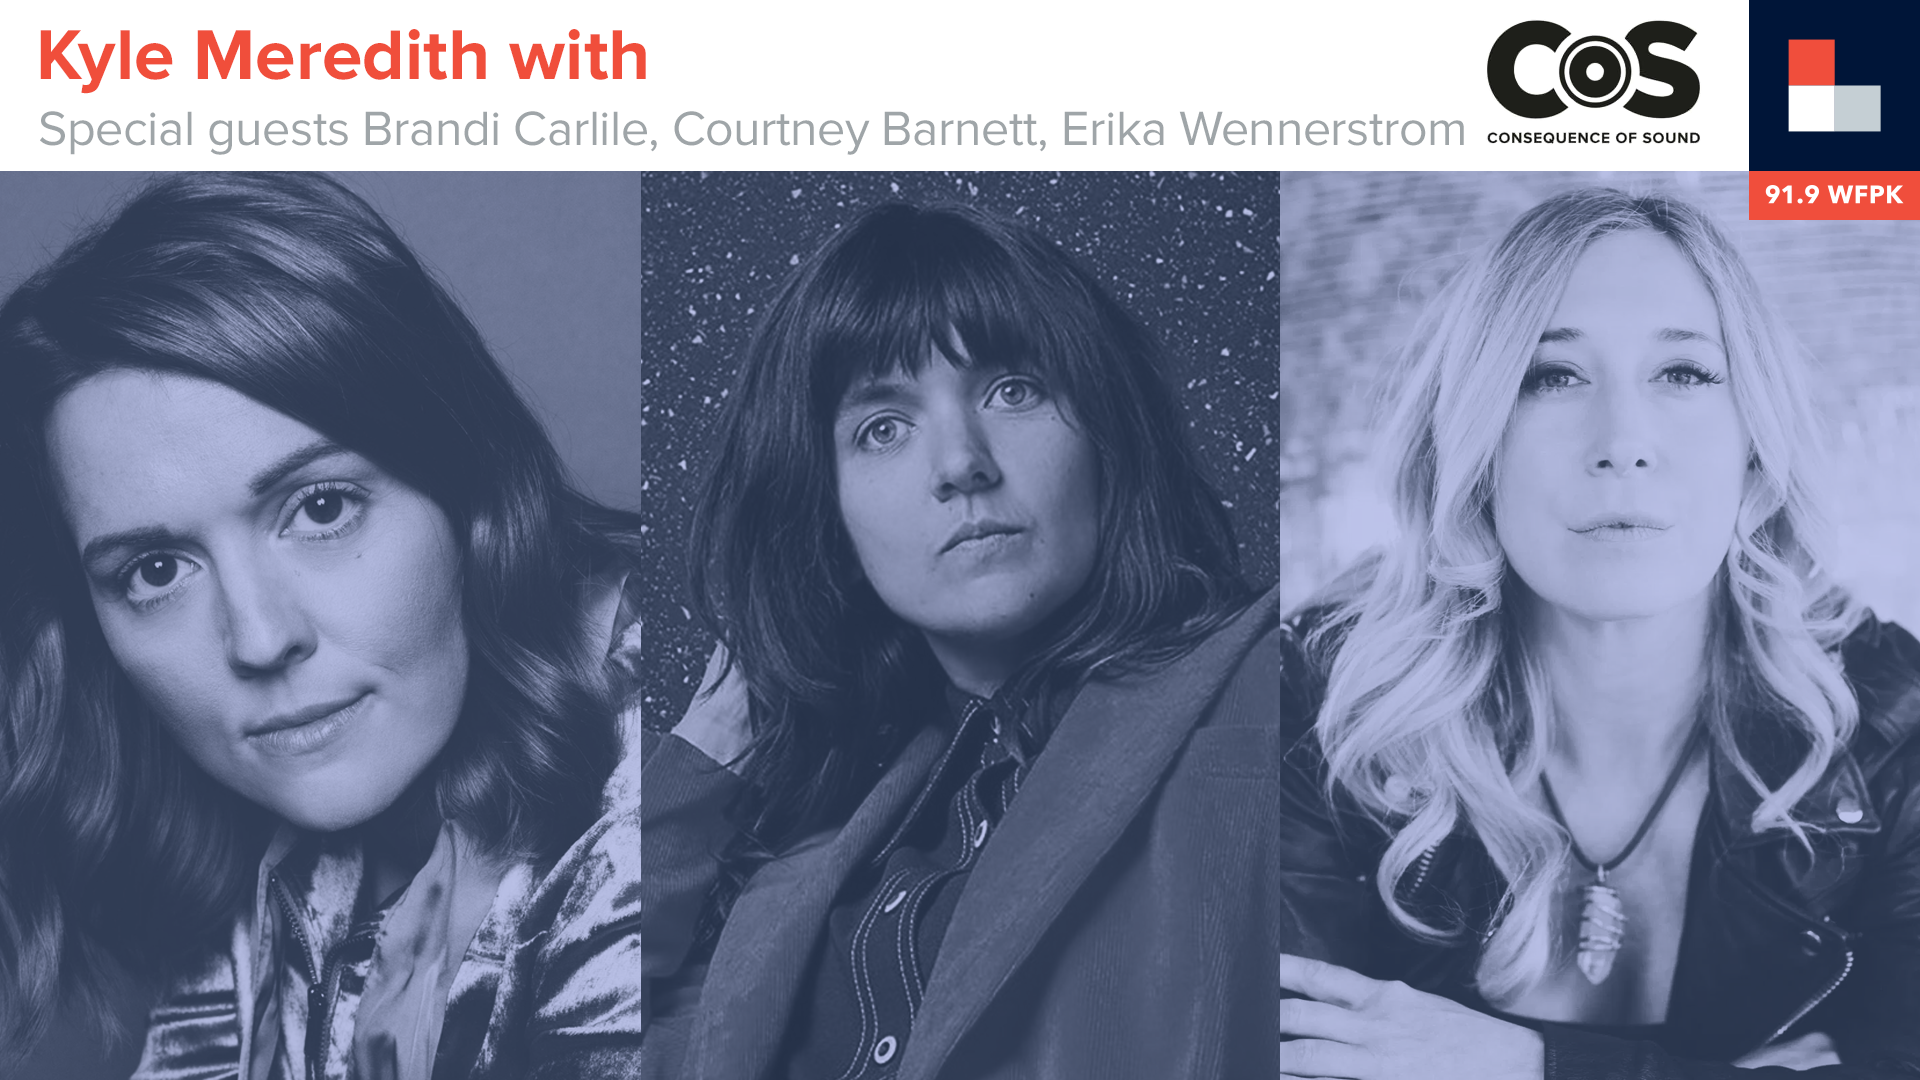 Brandi Carlile, Courtney Barnett, and Erika Wennerstrom on the Past, the Present, and the T-Shirts